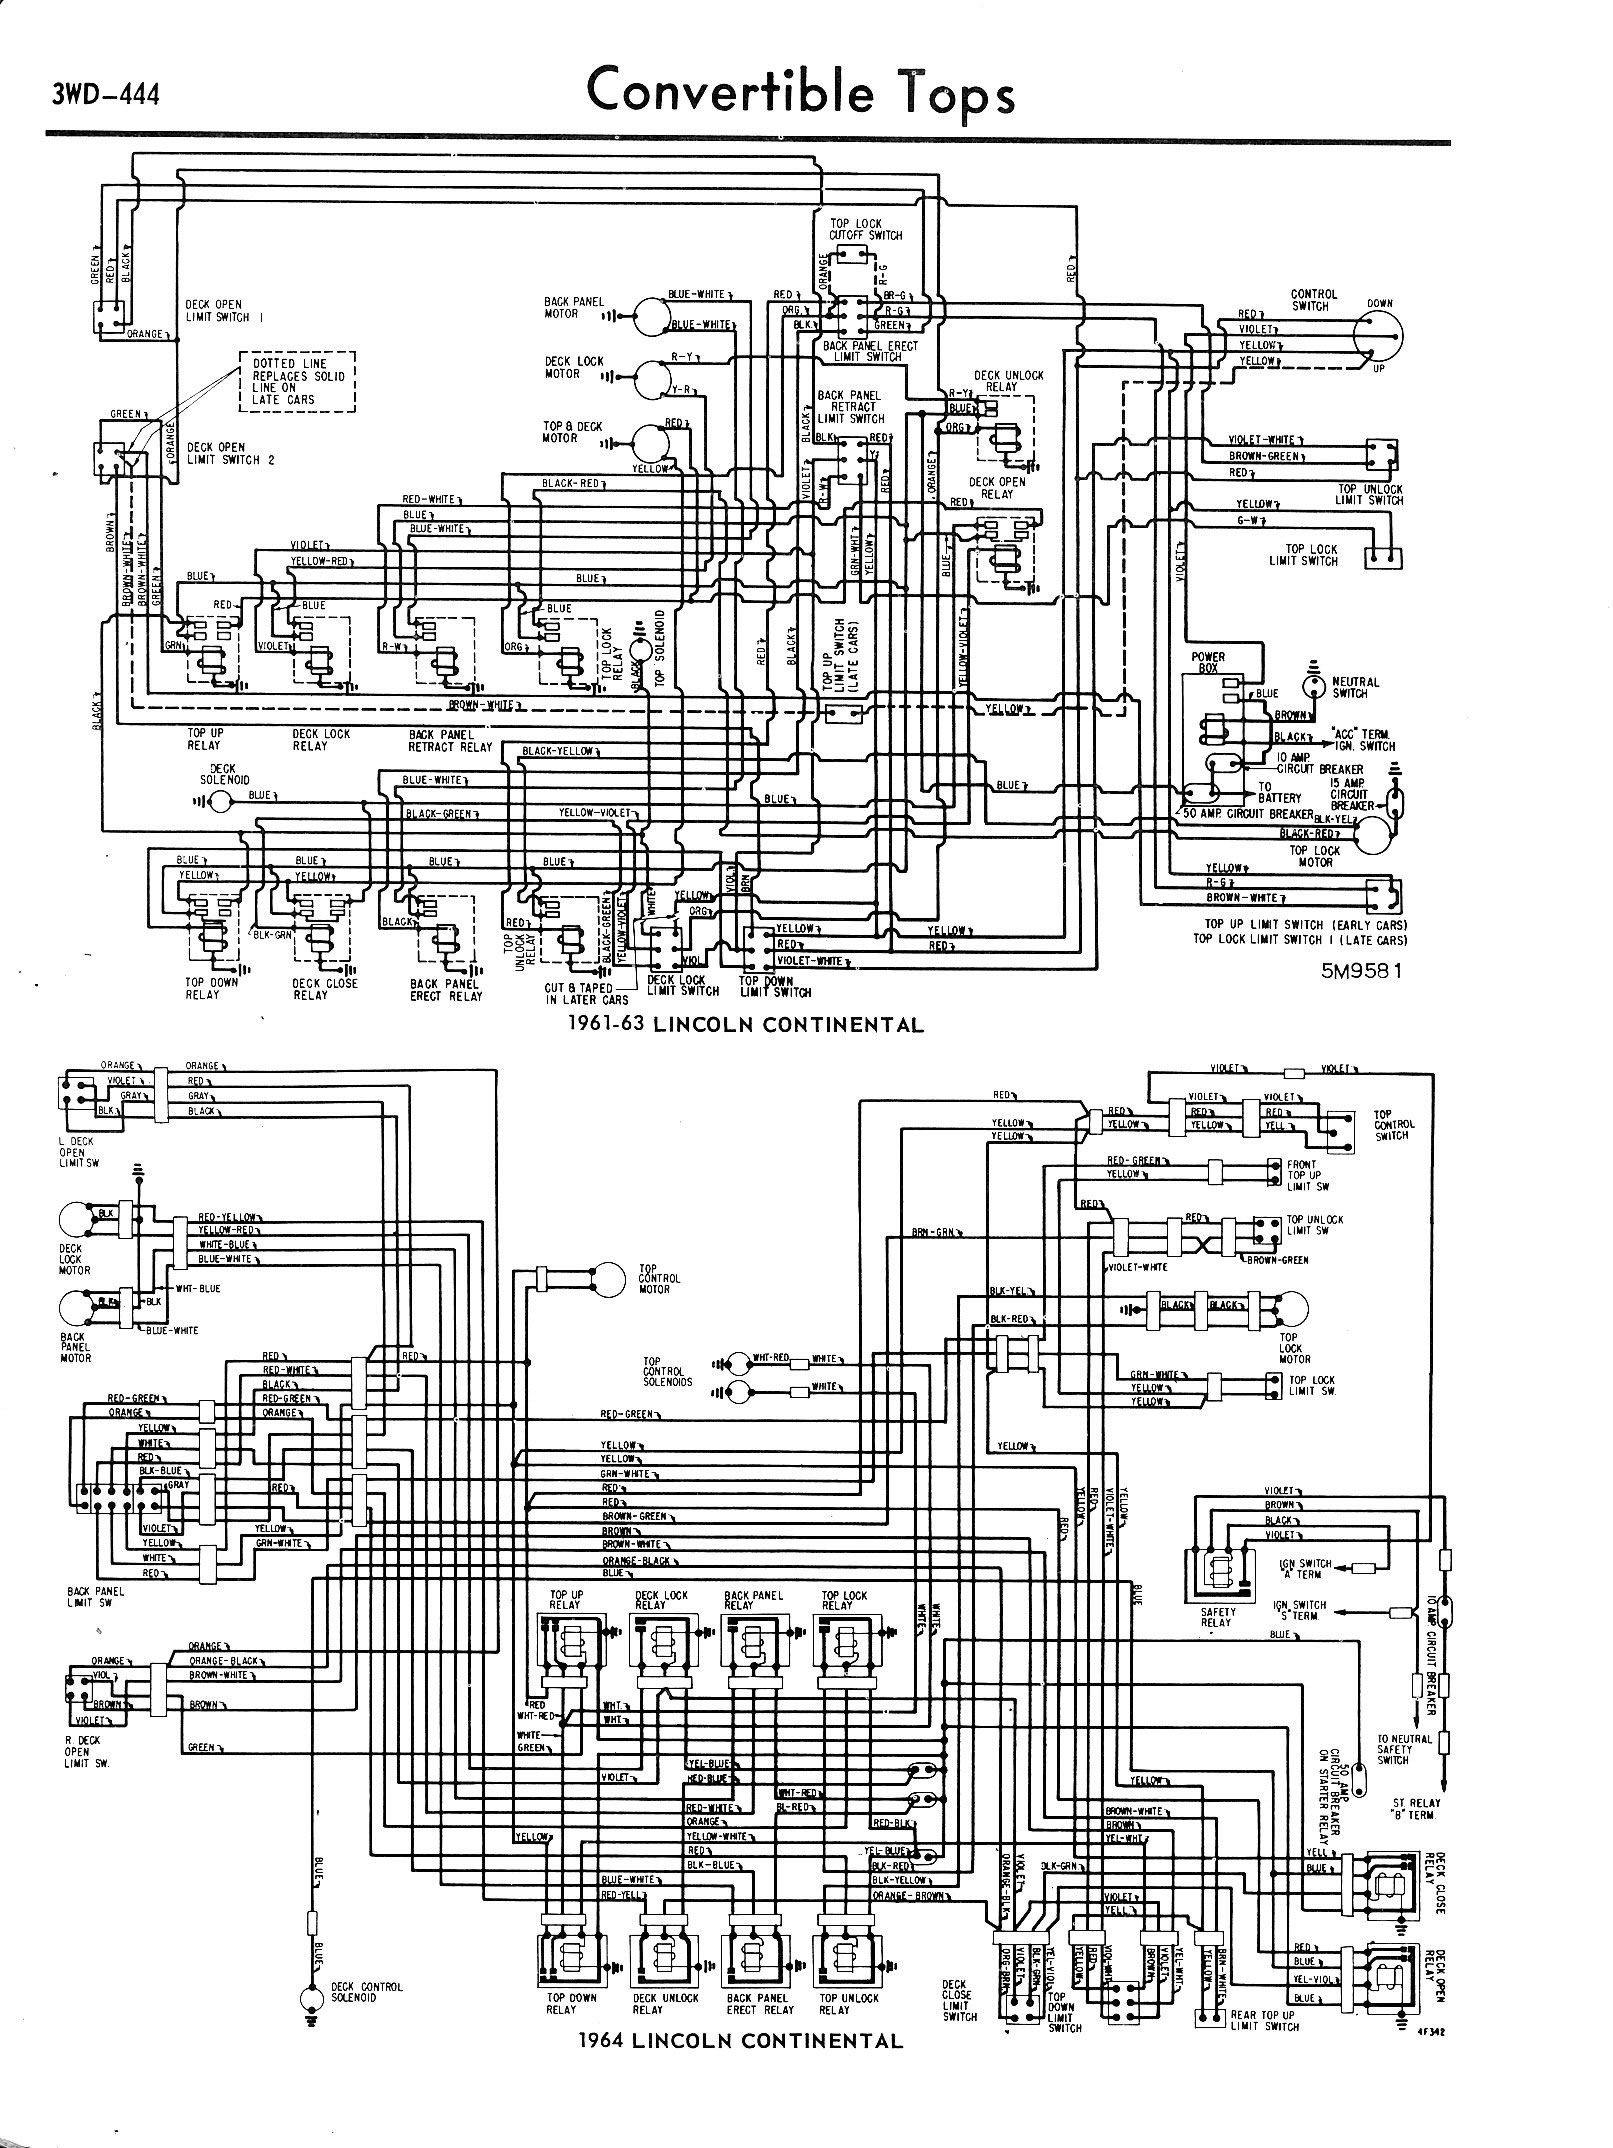 Ford Diagrams 1977 F150 Alternator Wiring Diagram 61 64 Lincoln Continental Figure A